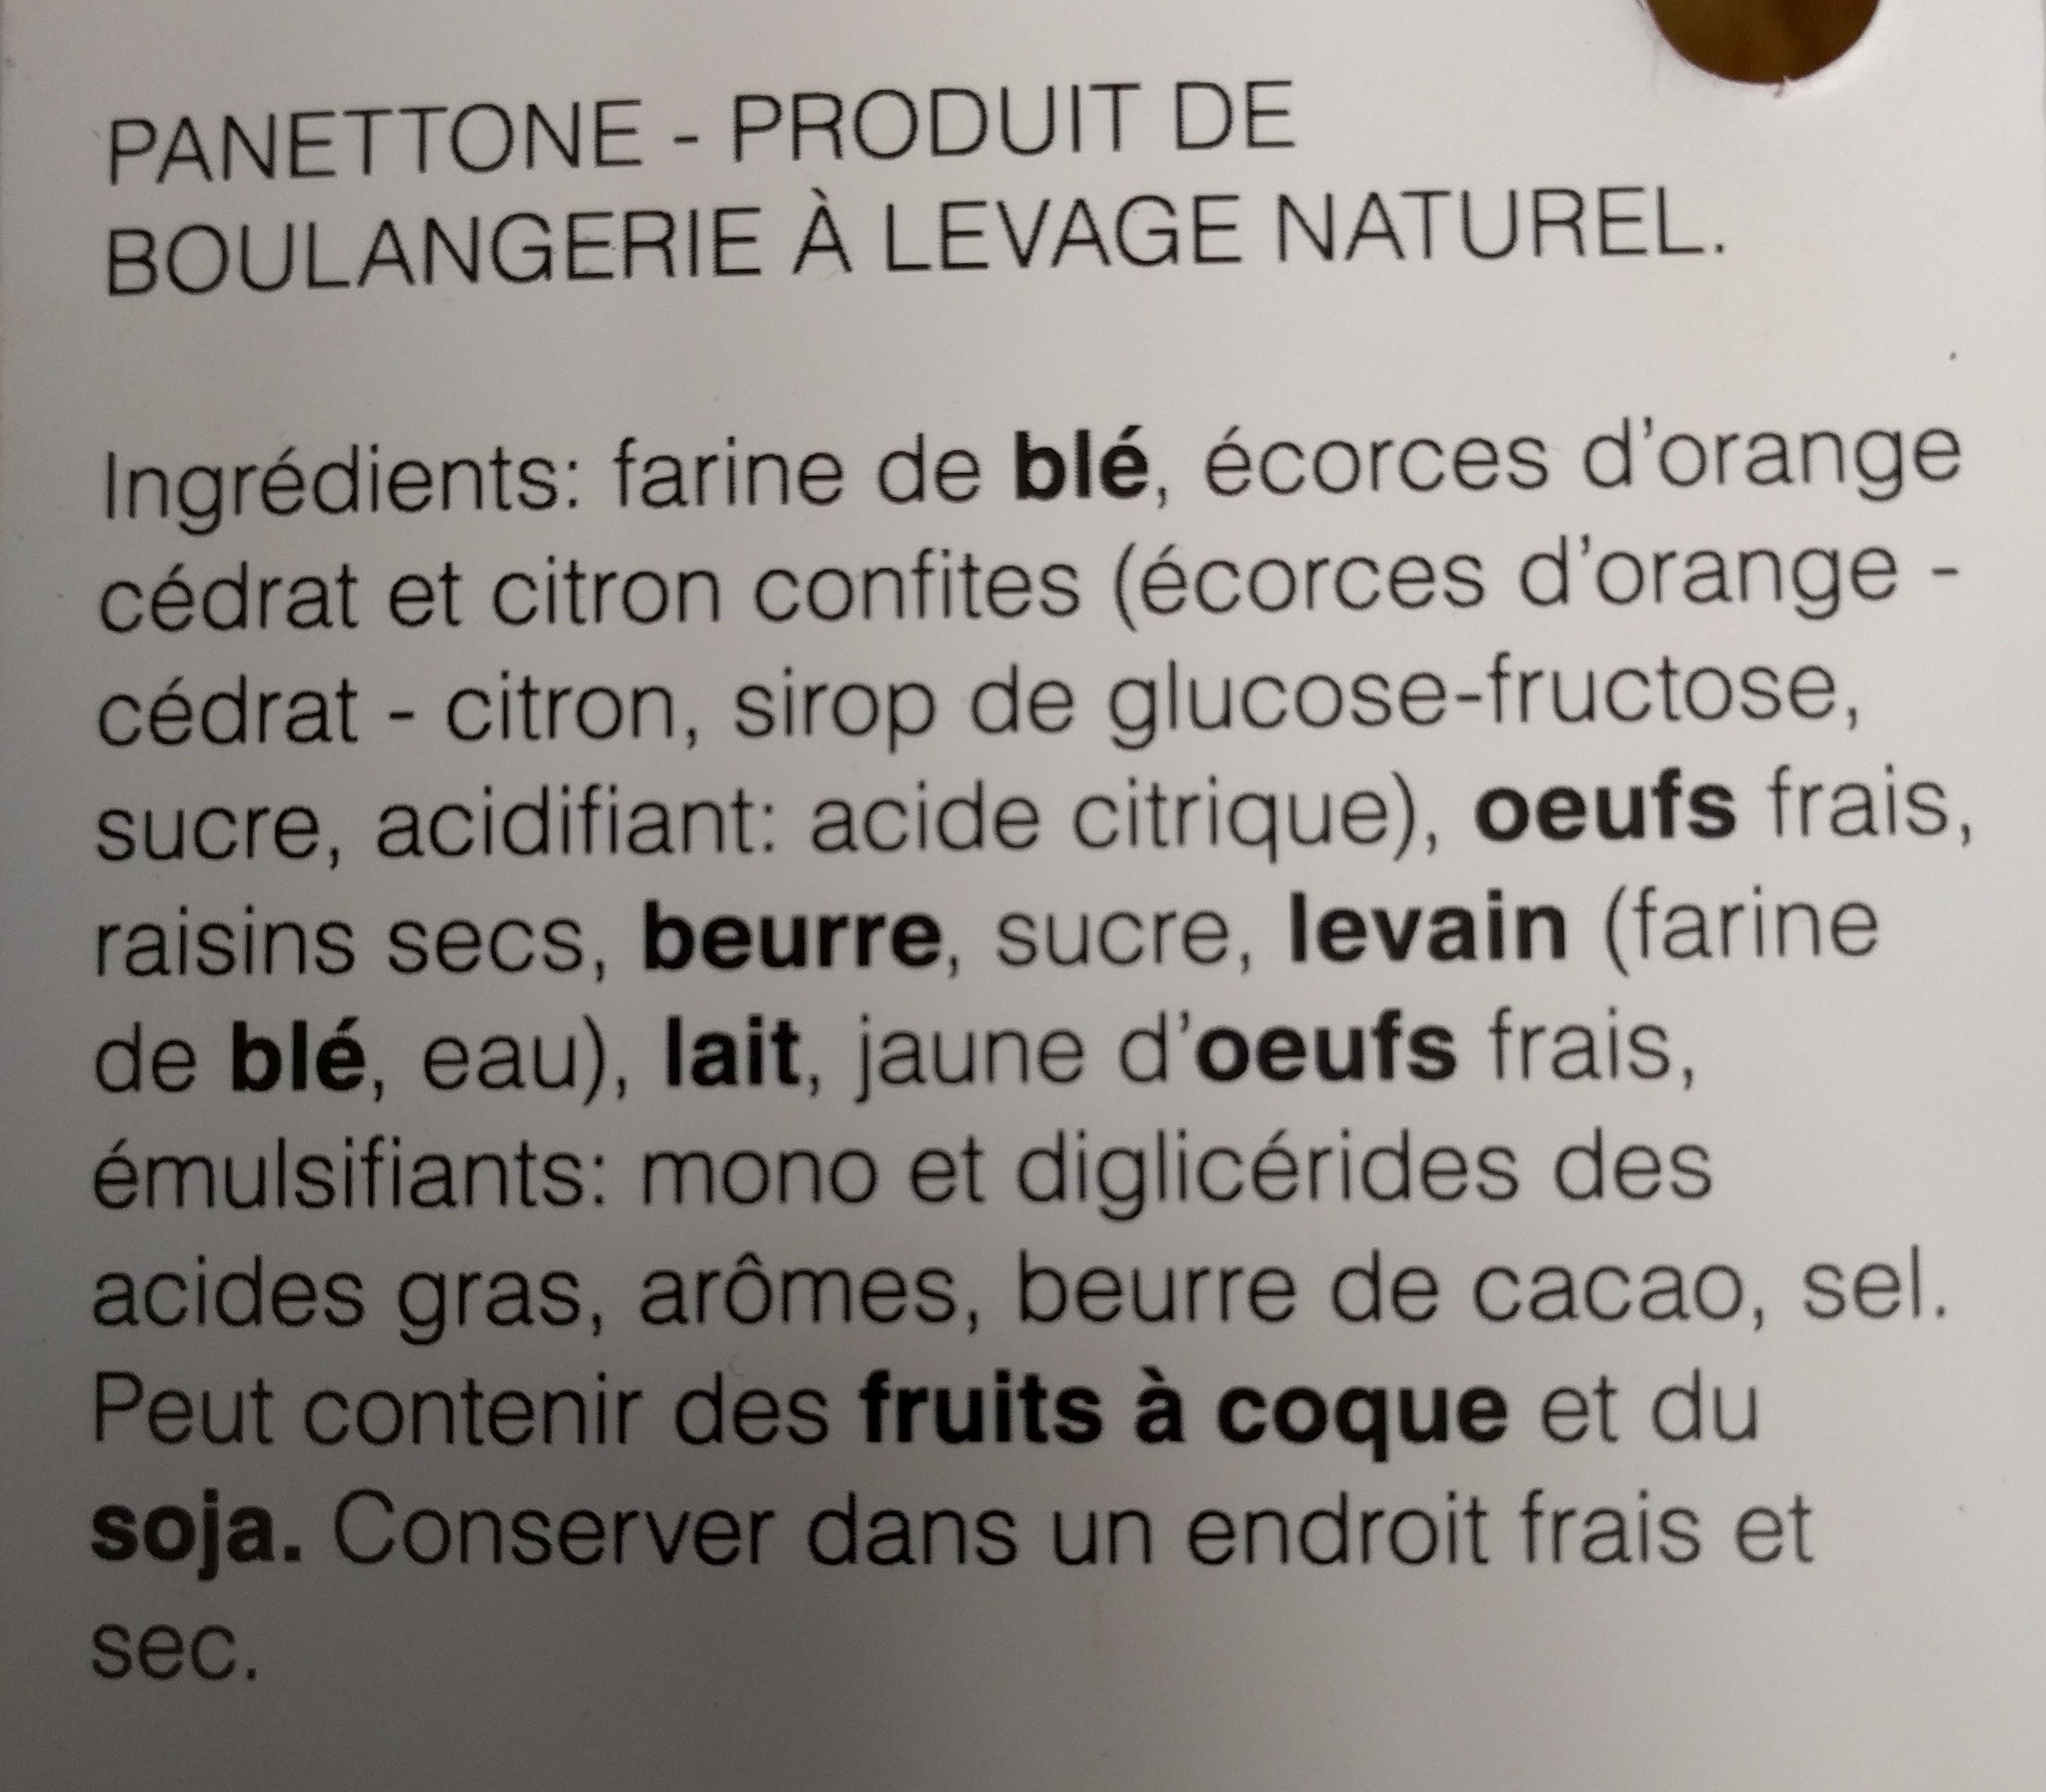 Panettone - Ingredients